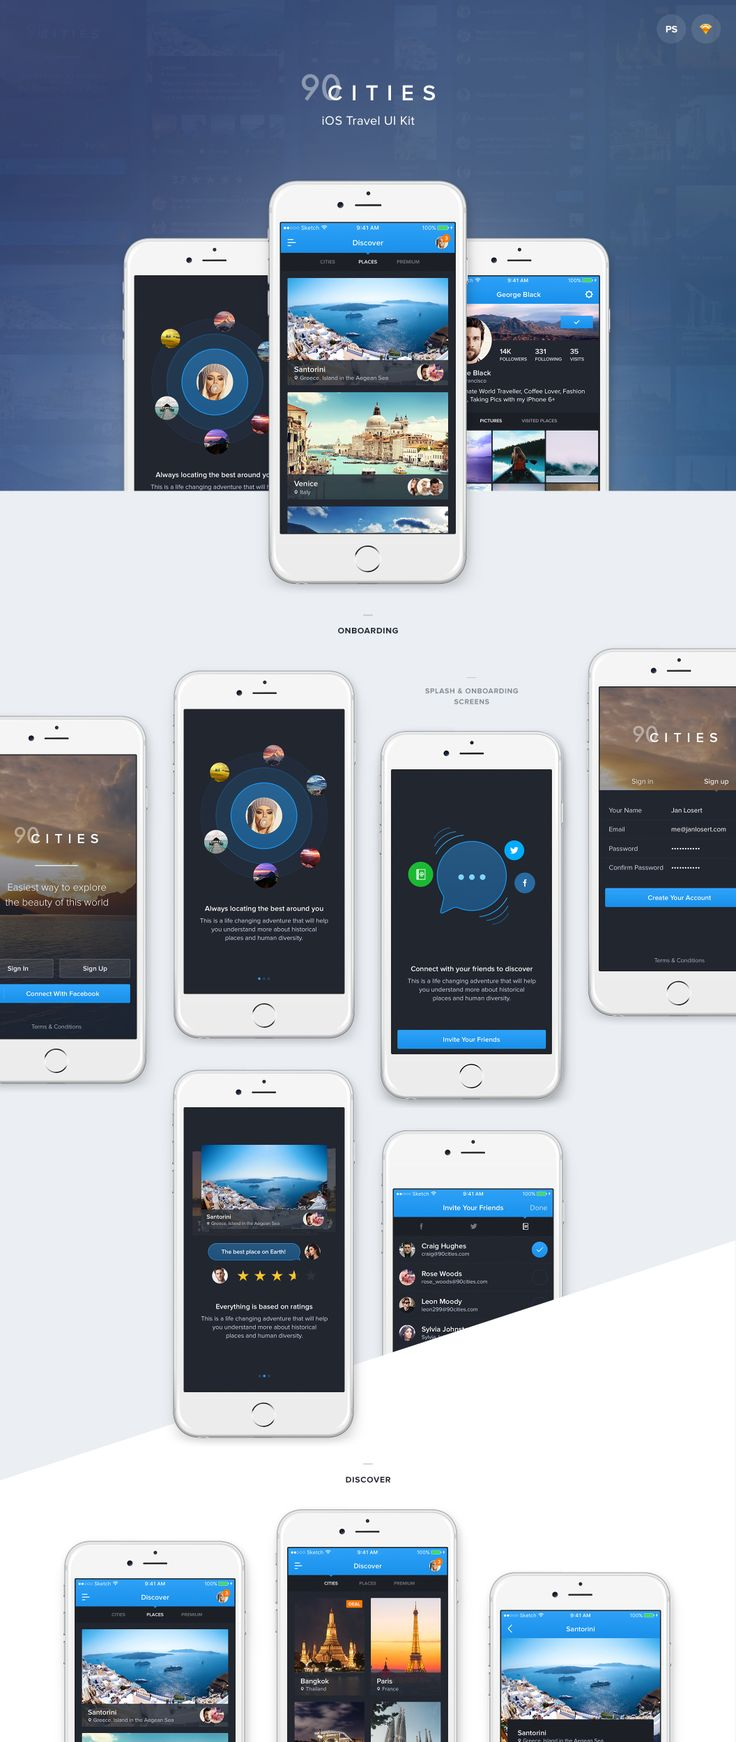 This stunning iOS UI Kit is the ultimate pack for iOS apps filled with travel content. Full app design will help you create your desired iOS App experience, and designed to give users the ability to choose from various types of content. 90Cities is alike real app containing the whole journey from Splash screen, Login, Onboarding, Discover, Bottom Bar Menu, Sidebar Menu, Settings, Overlay screen designs. Feel free to go through the whole experience in the link to Invision Prototype.